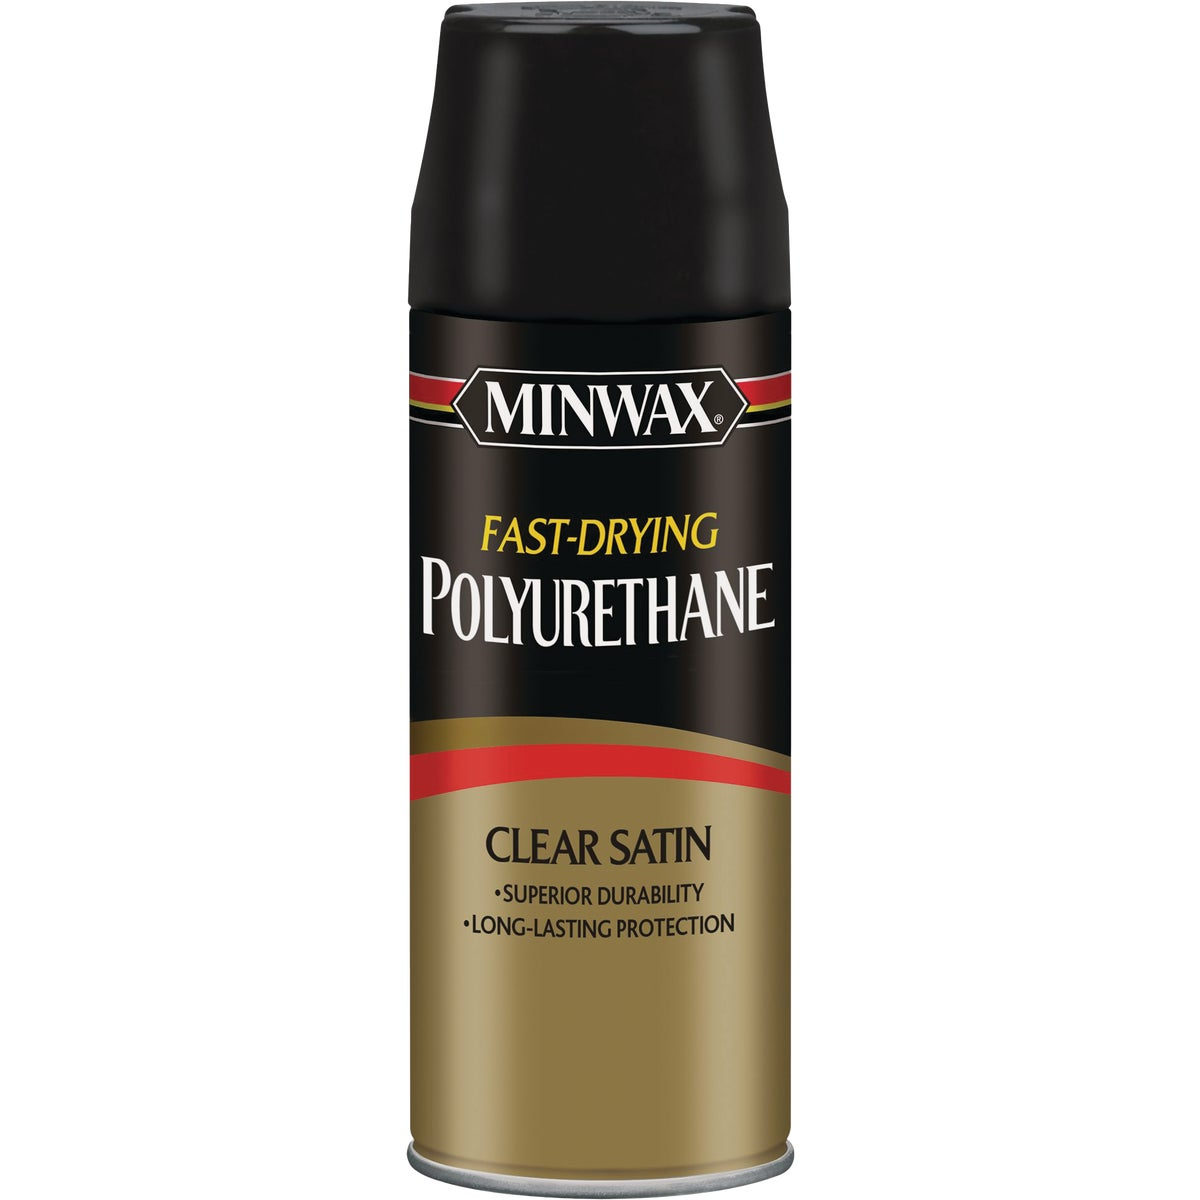 SATIN SPRAY POLYURETHANE - 33060 by Minwax Company